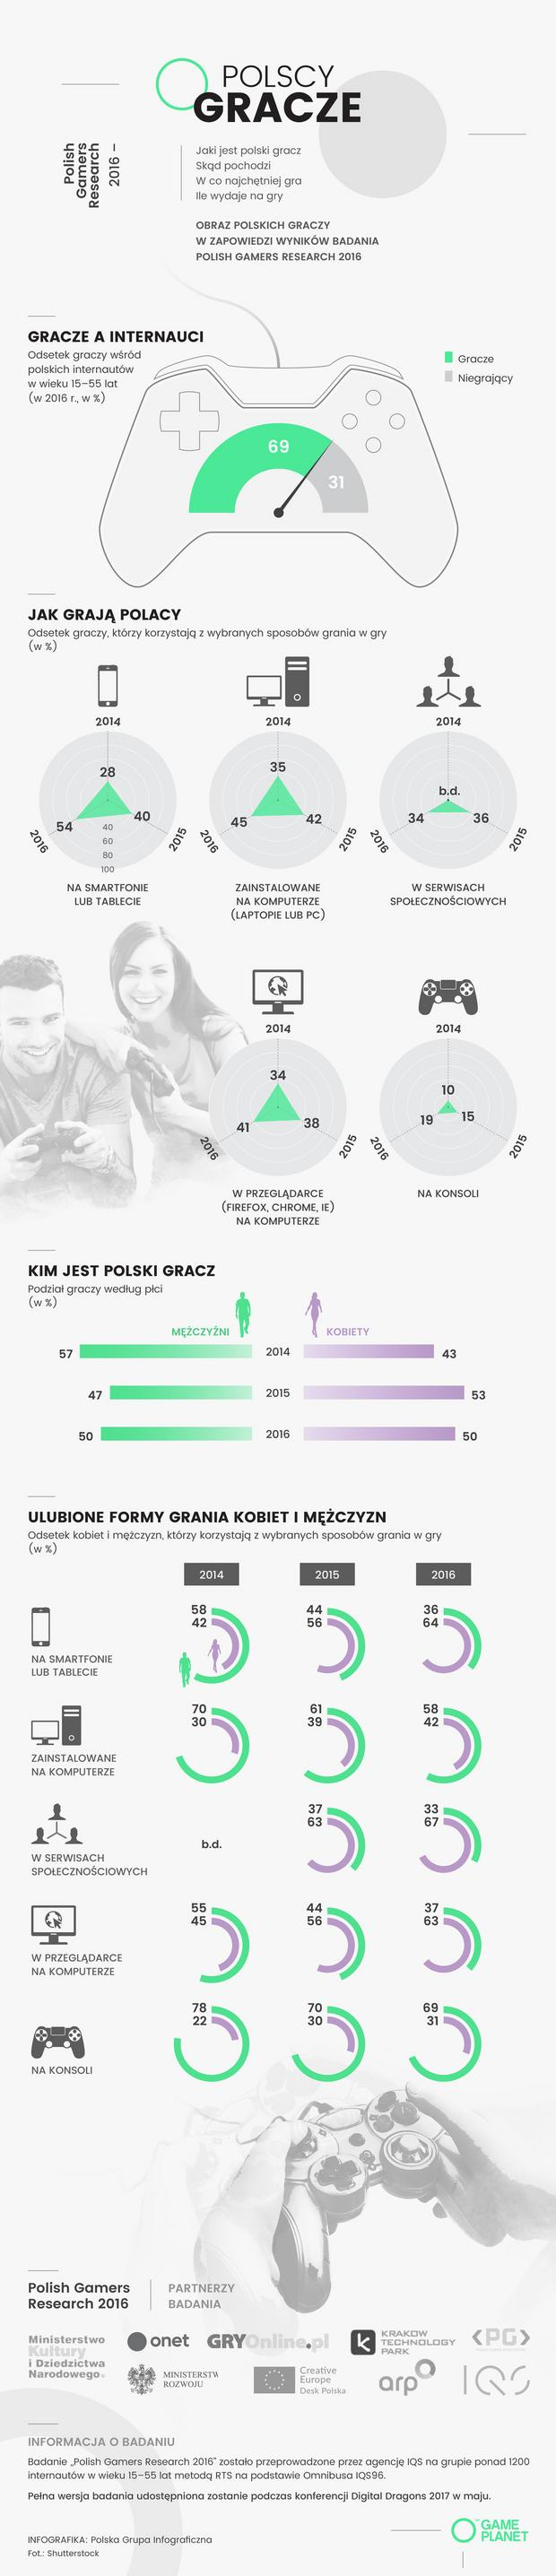 Polish Gamers Research 2016